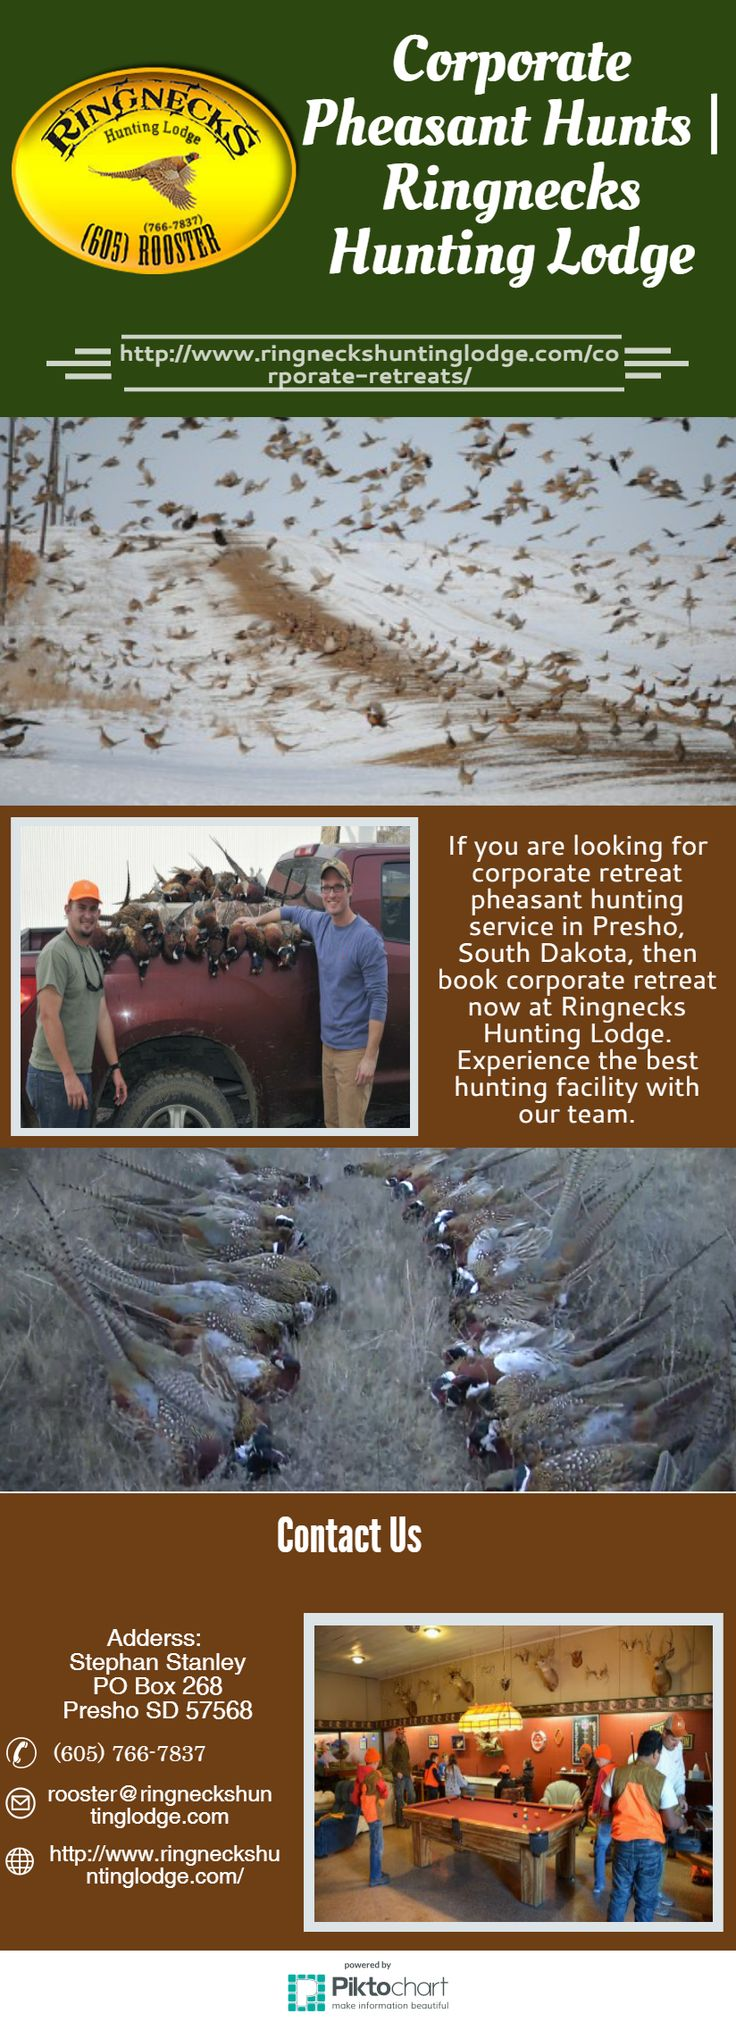 If you are looking for corporate retreat pheasant hunting service in Presho, South Dakota, then book corporate retreat now at Ringnecks Hunting Lodge. Experience the best hunting facility with our team. Visit at https://magic.piktochart.com/output/22097795-corporate-pheasant-hunts-ringnecks-hunting-lodge